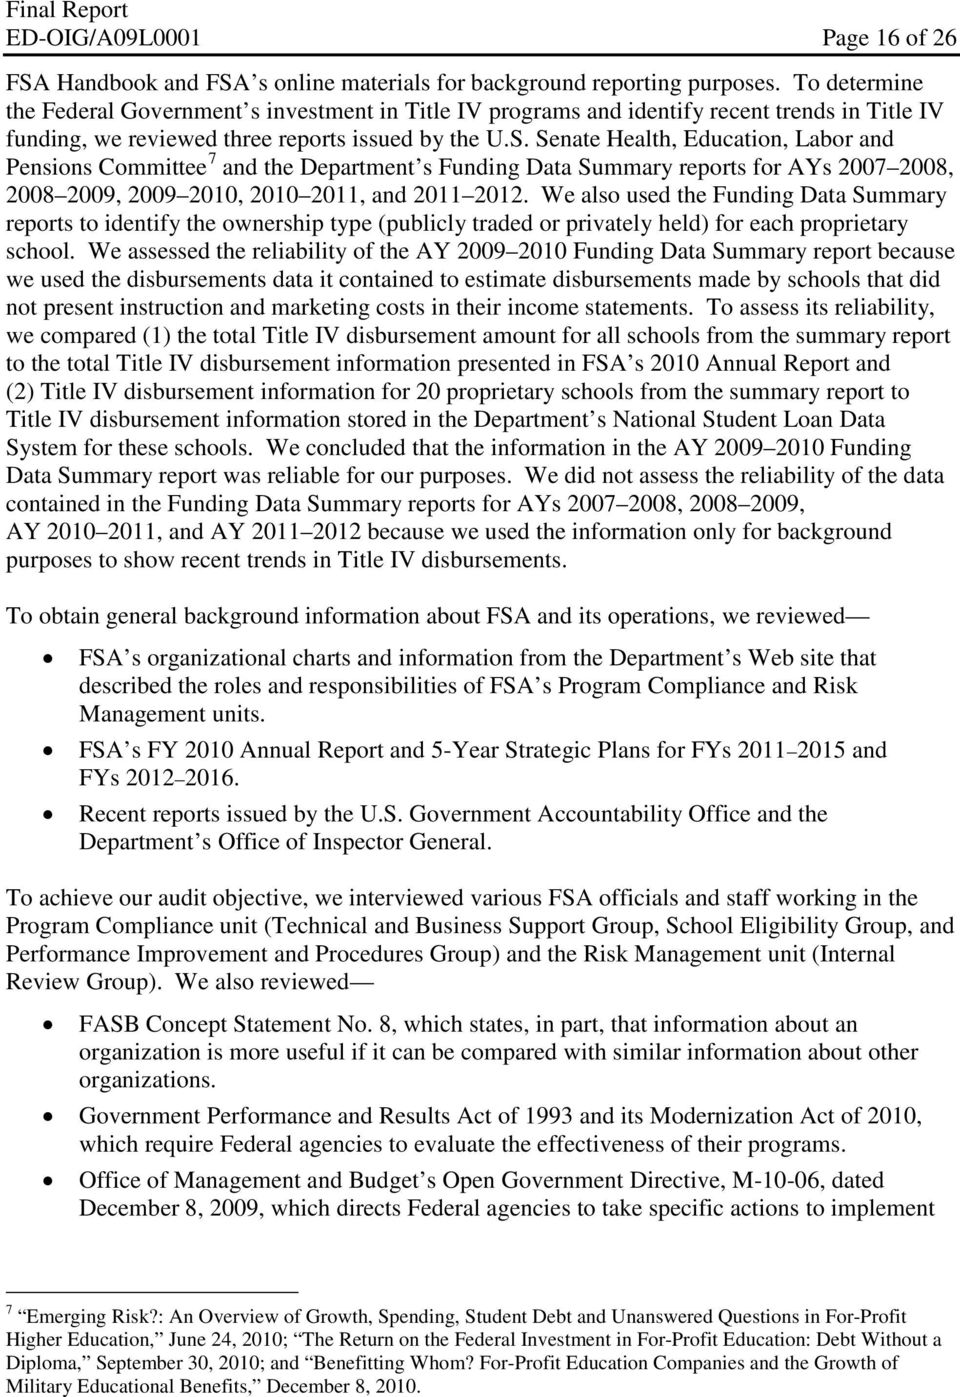 Senate Health, Education, Labor and Pensions Committee 7 and the Department s Funding Data Summary reports for AYs 2007 2008, 2008 2009, 2009 2010, 2010 2011, and 2011 2012.